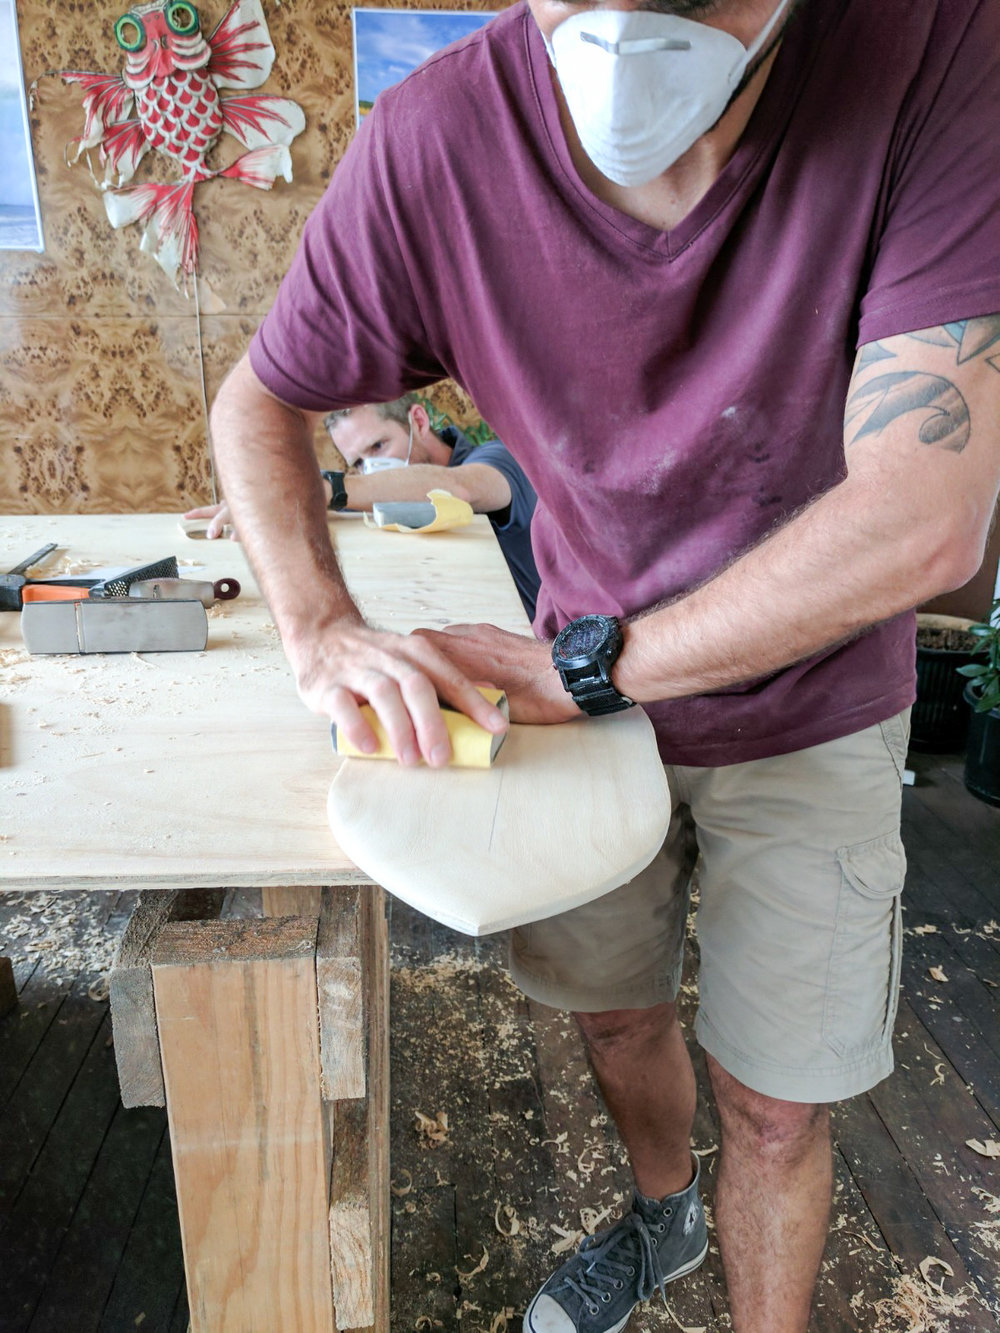 how to make a body surfing hand plane